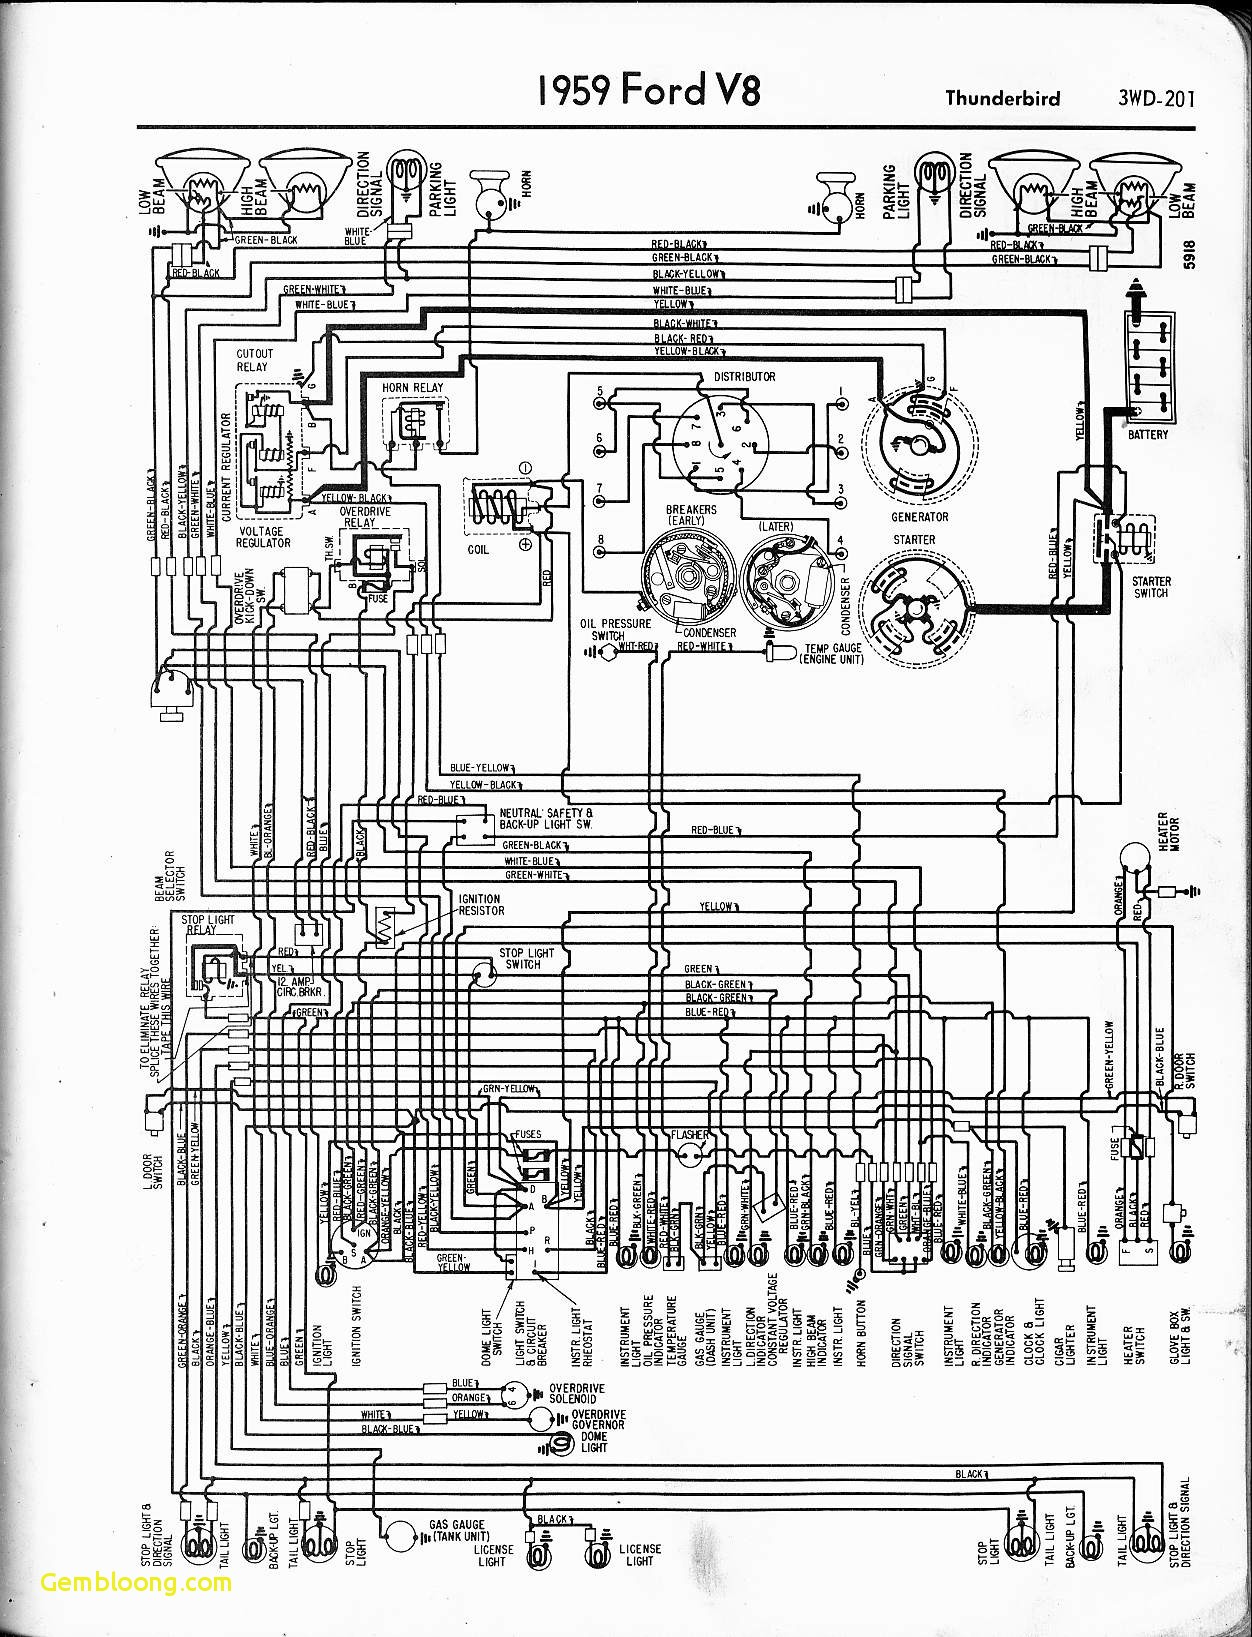 350z Engine Diagram Diagram Crossover Ads Wiring 336is Custom Project Wiring Diagram • Of 350z Engine Diagram 2005 350z Automotif and Modification